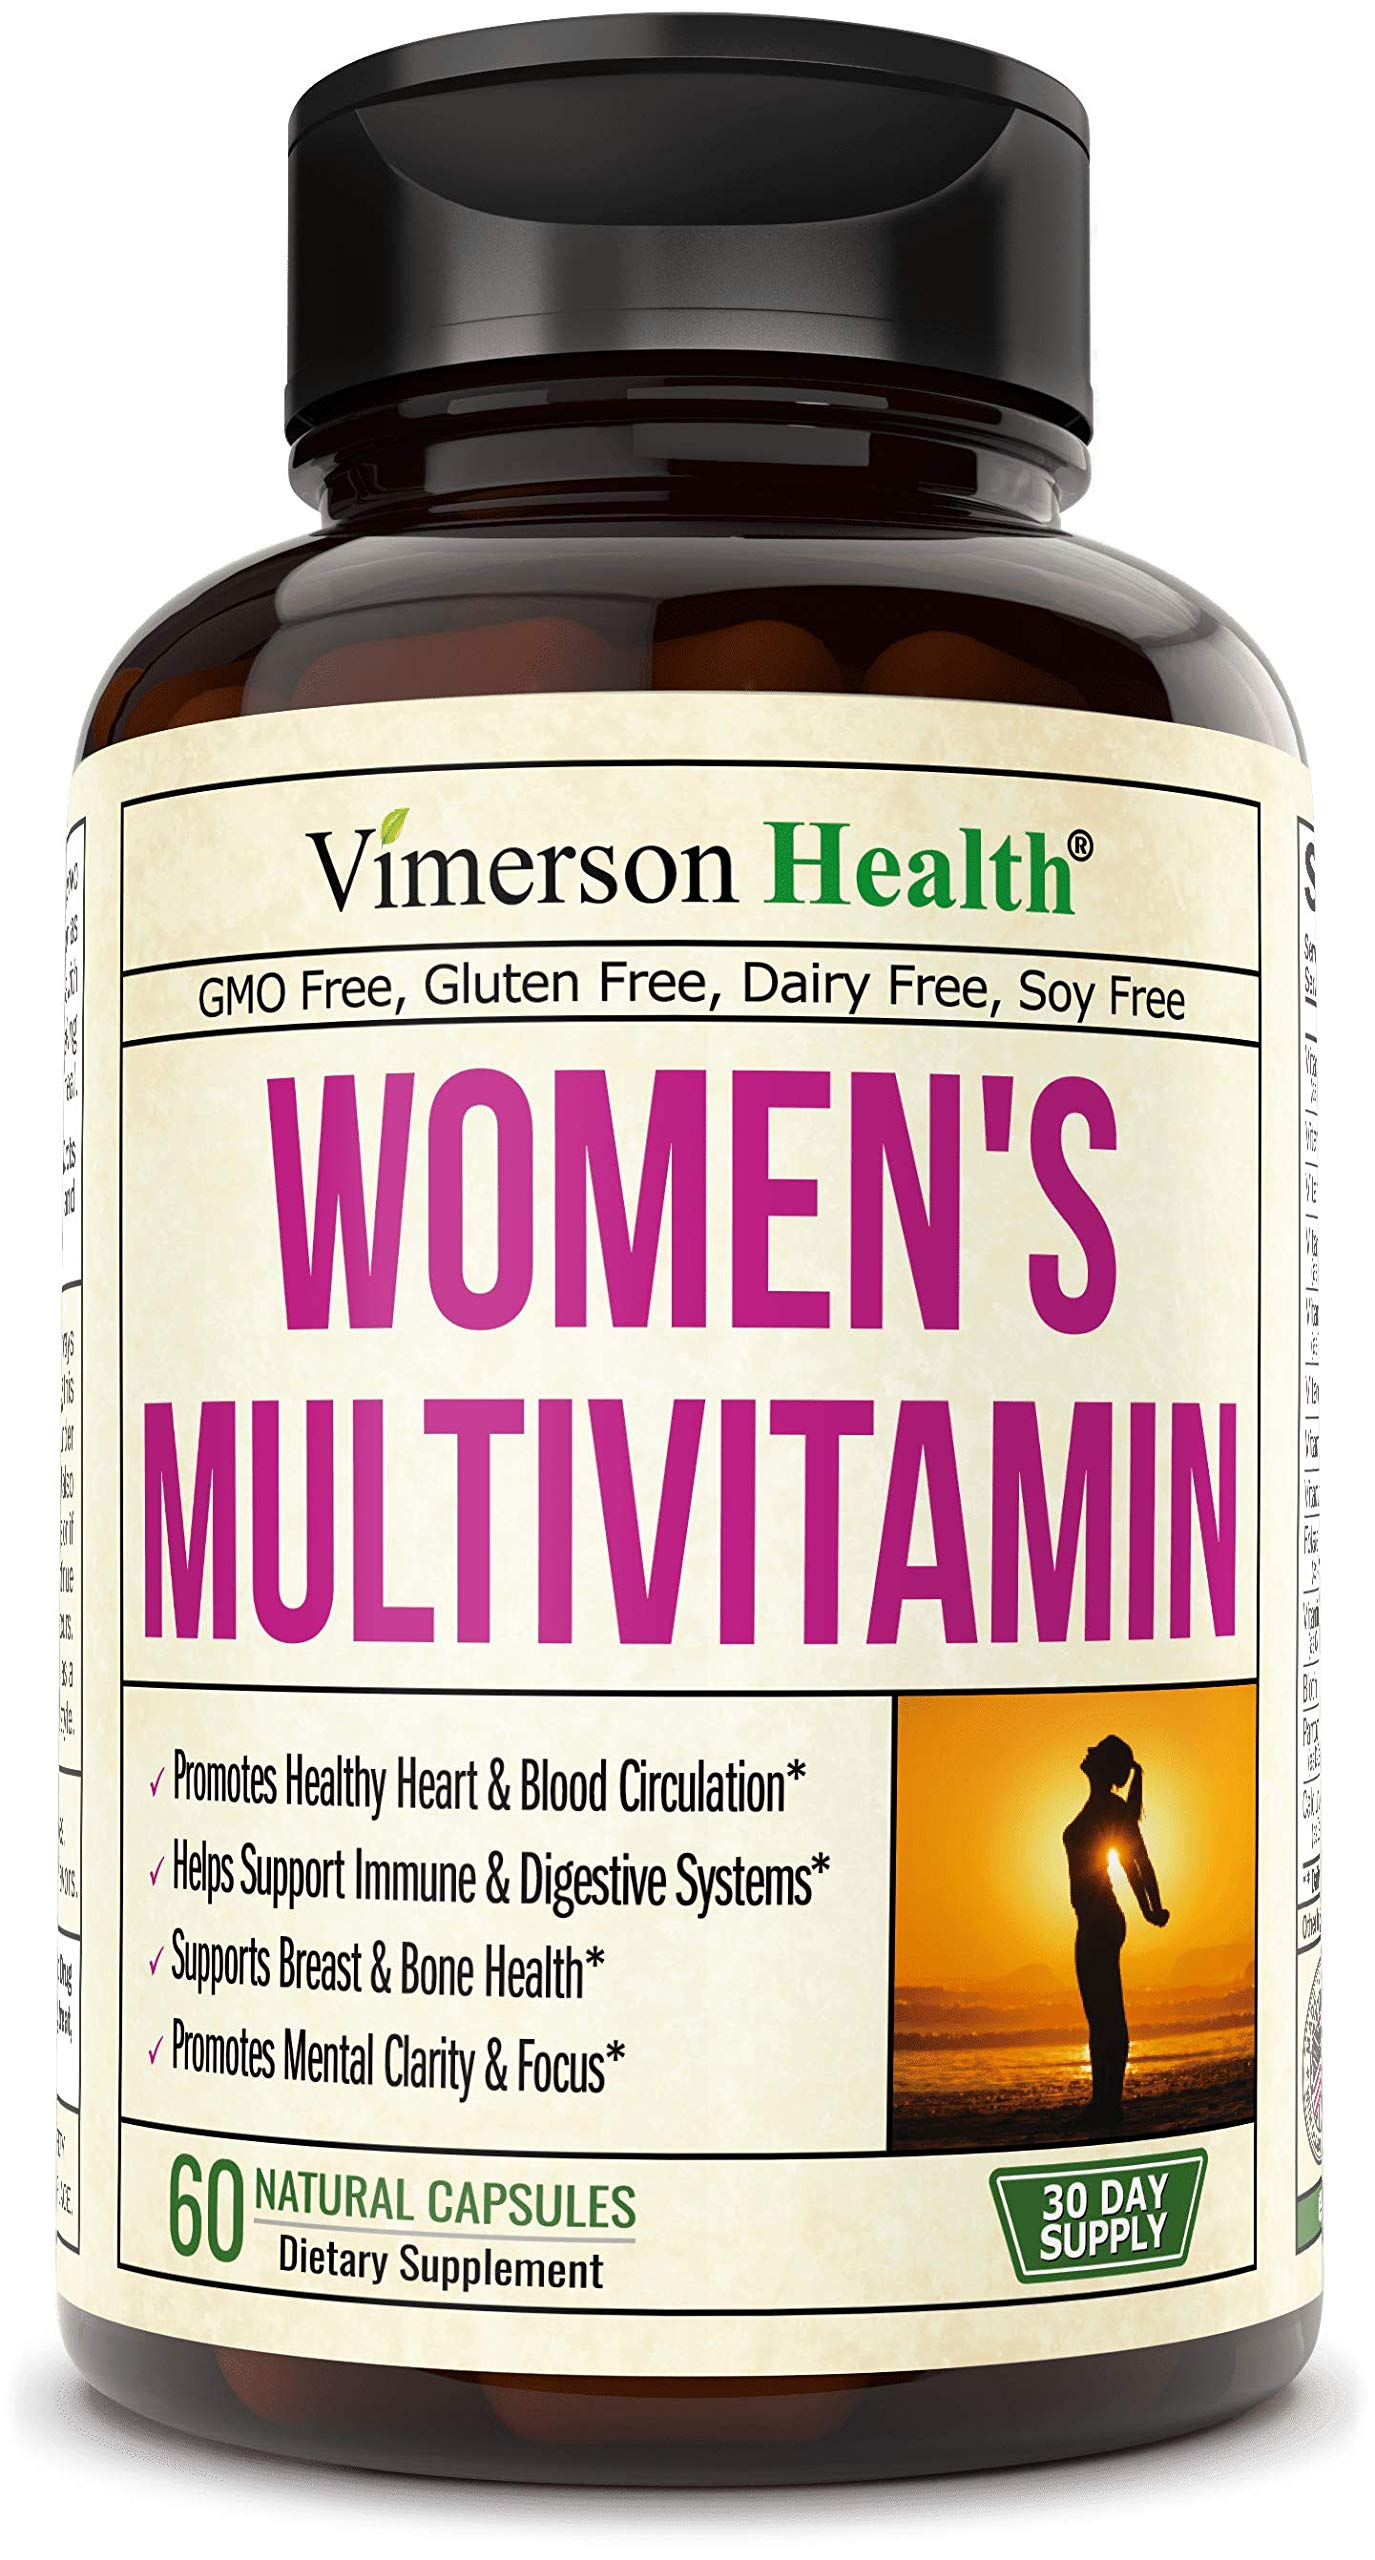 Women's Daily Multivitamin Multimineral Supplement. Vitamins and Minerals. Chromium